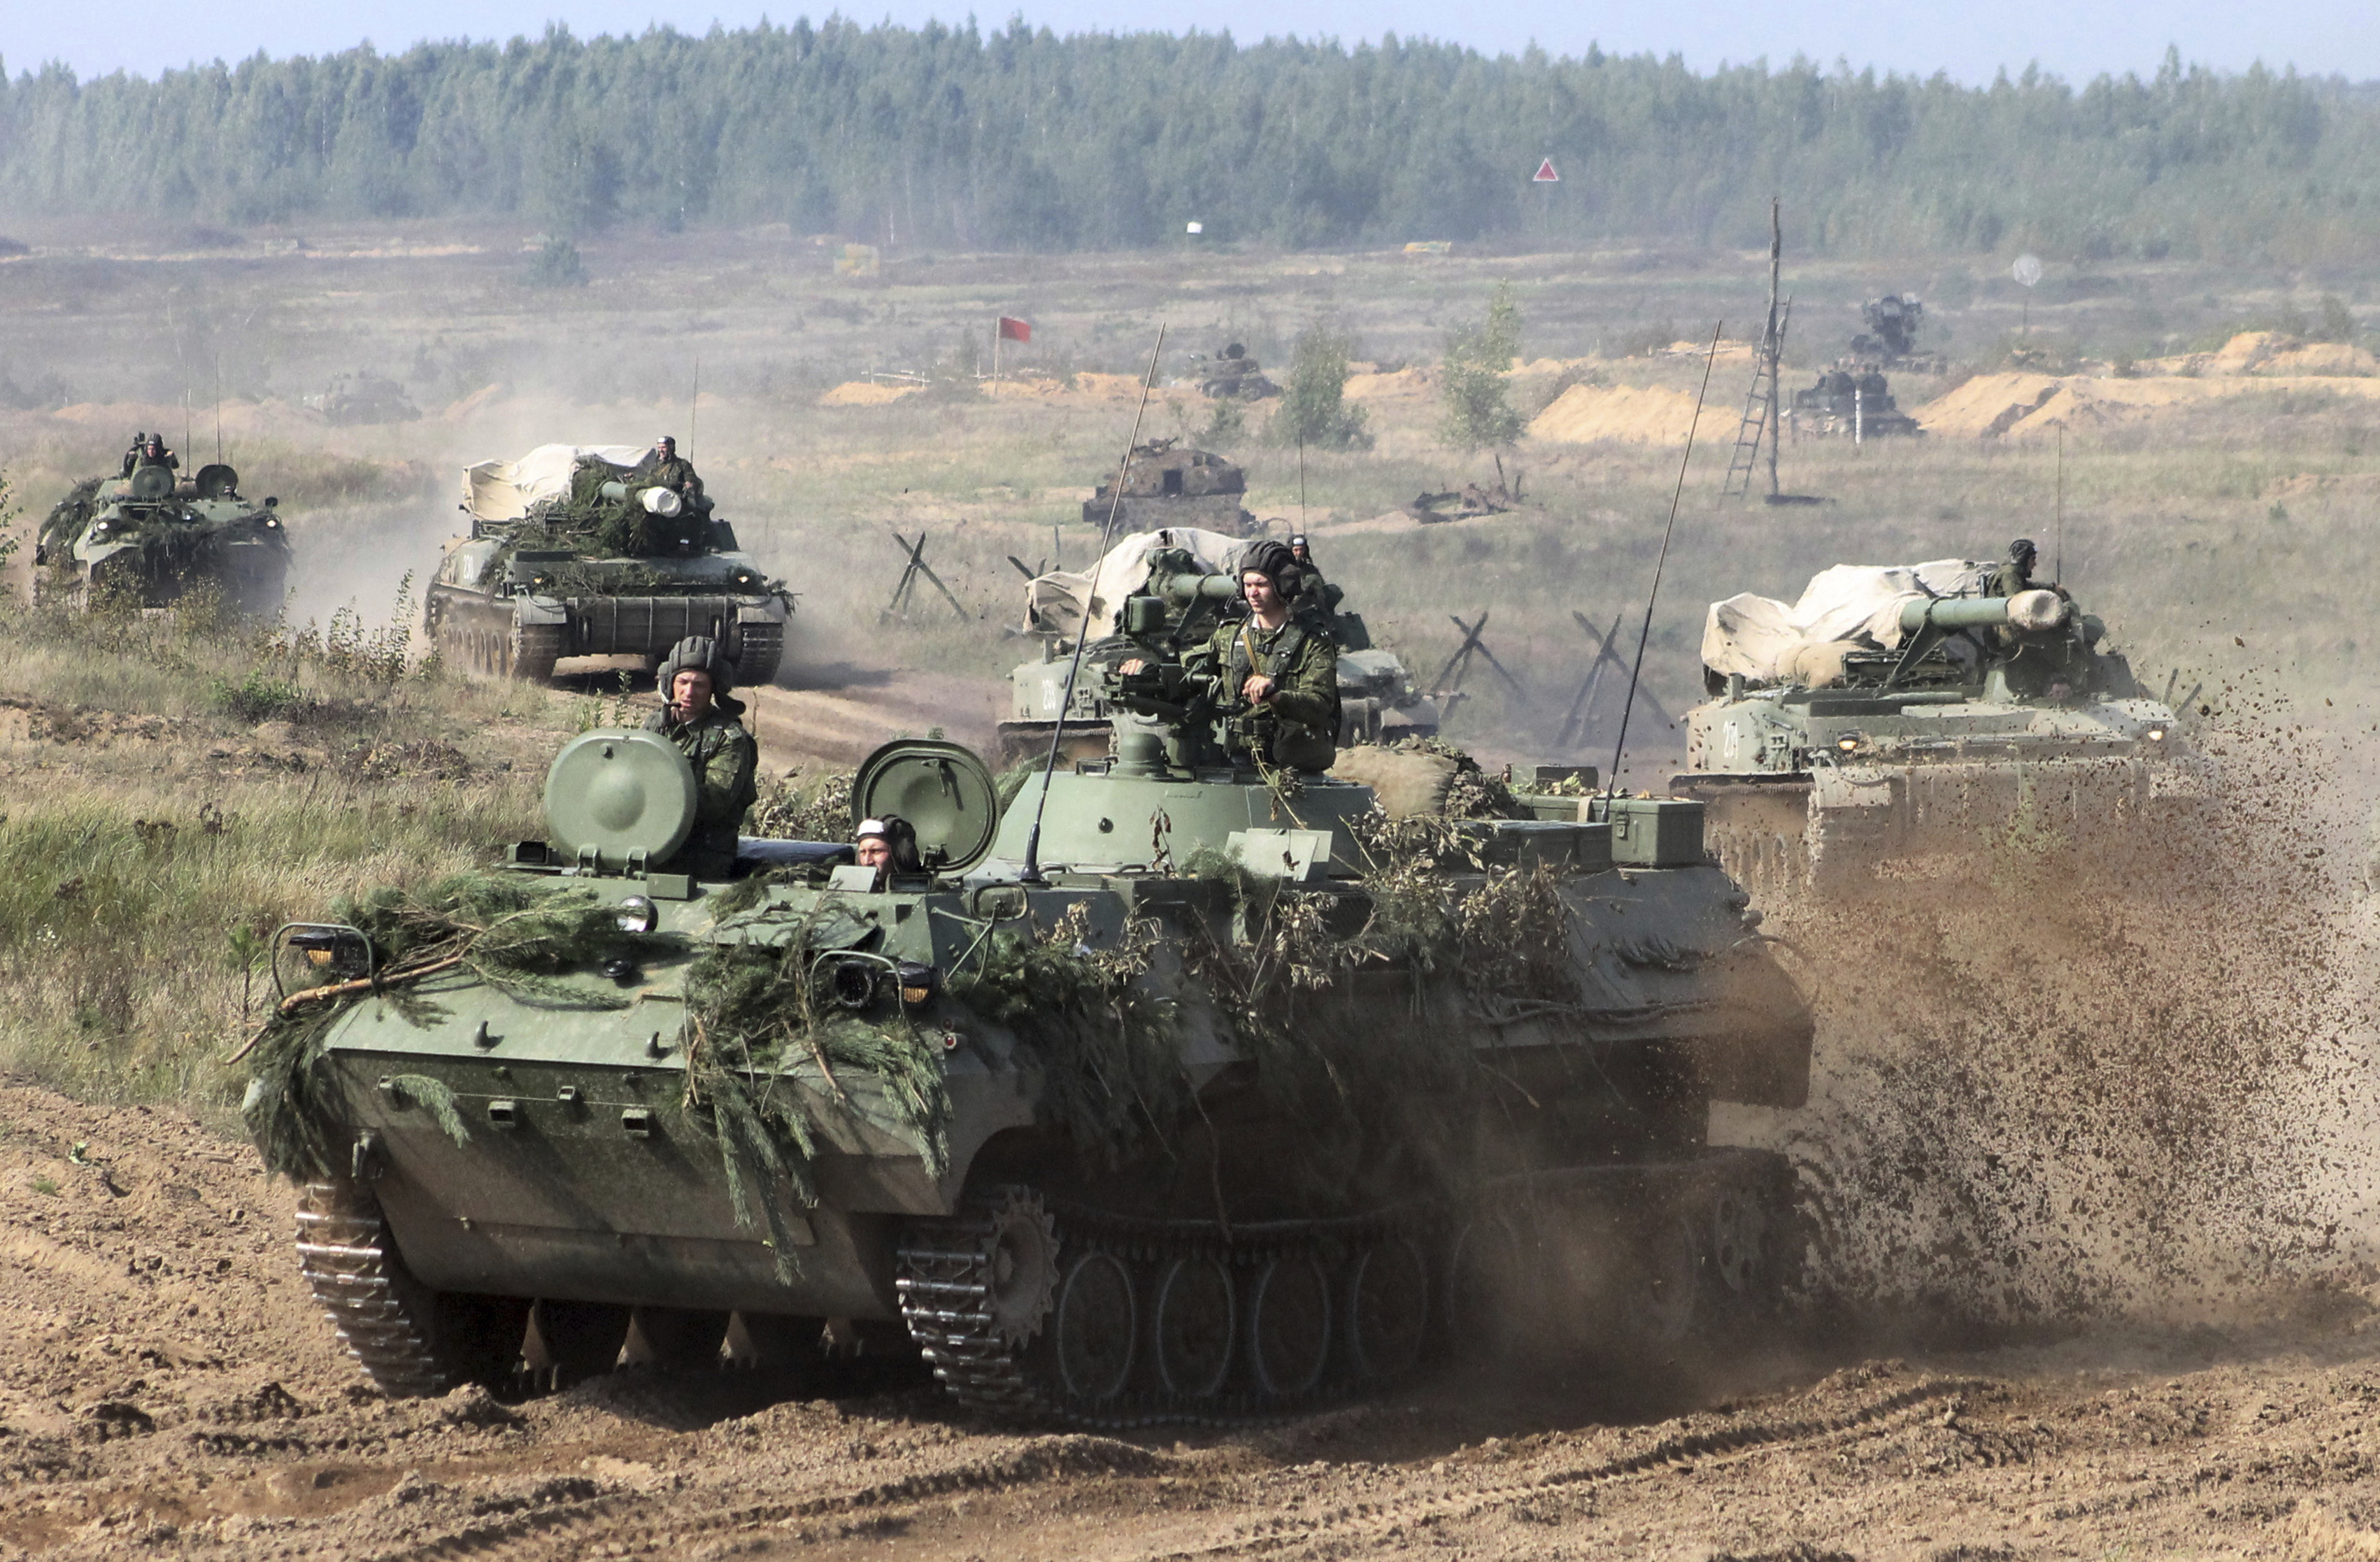 Belarusian army vehicles drive preparing for war games at an undisclosed location in Belarus on Sept. 11, 2017.